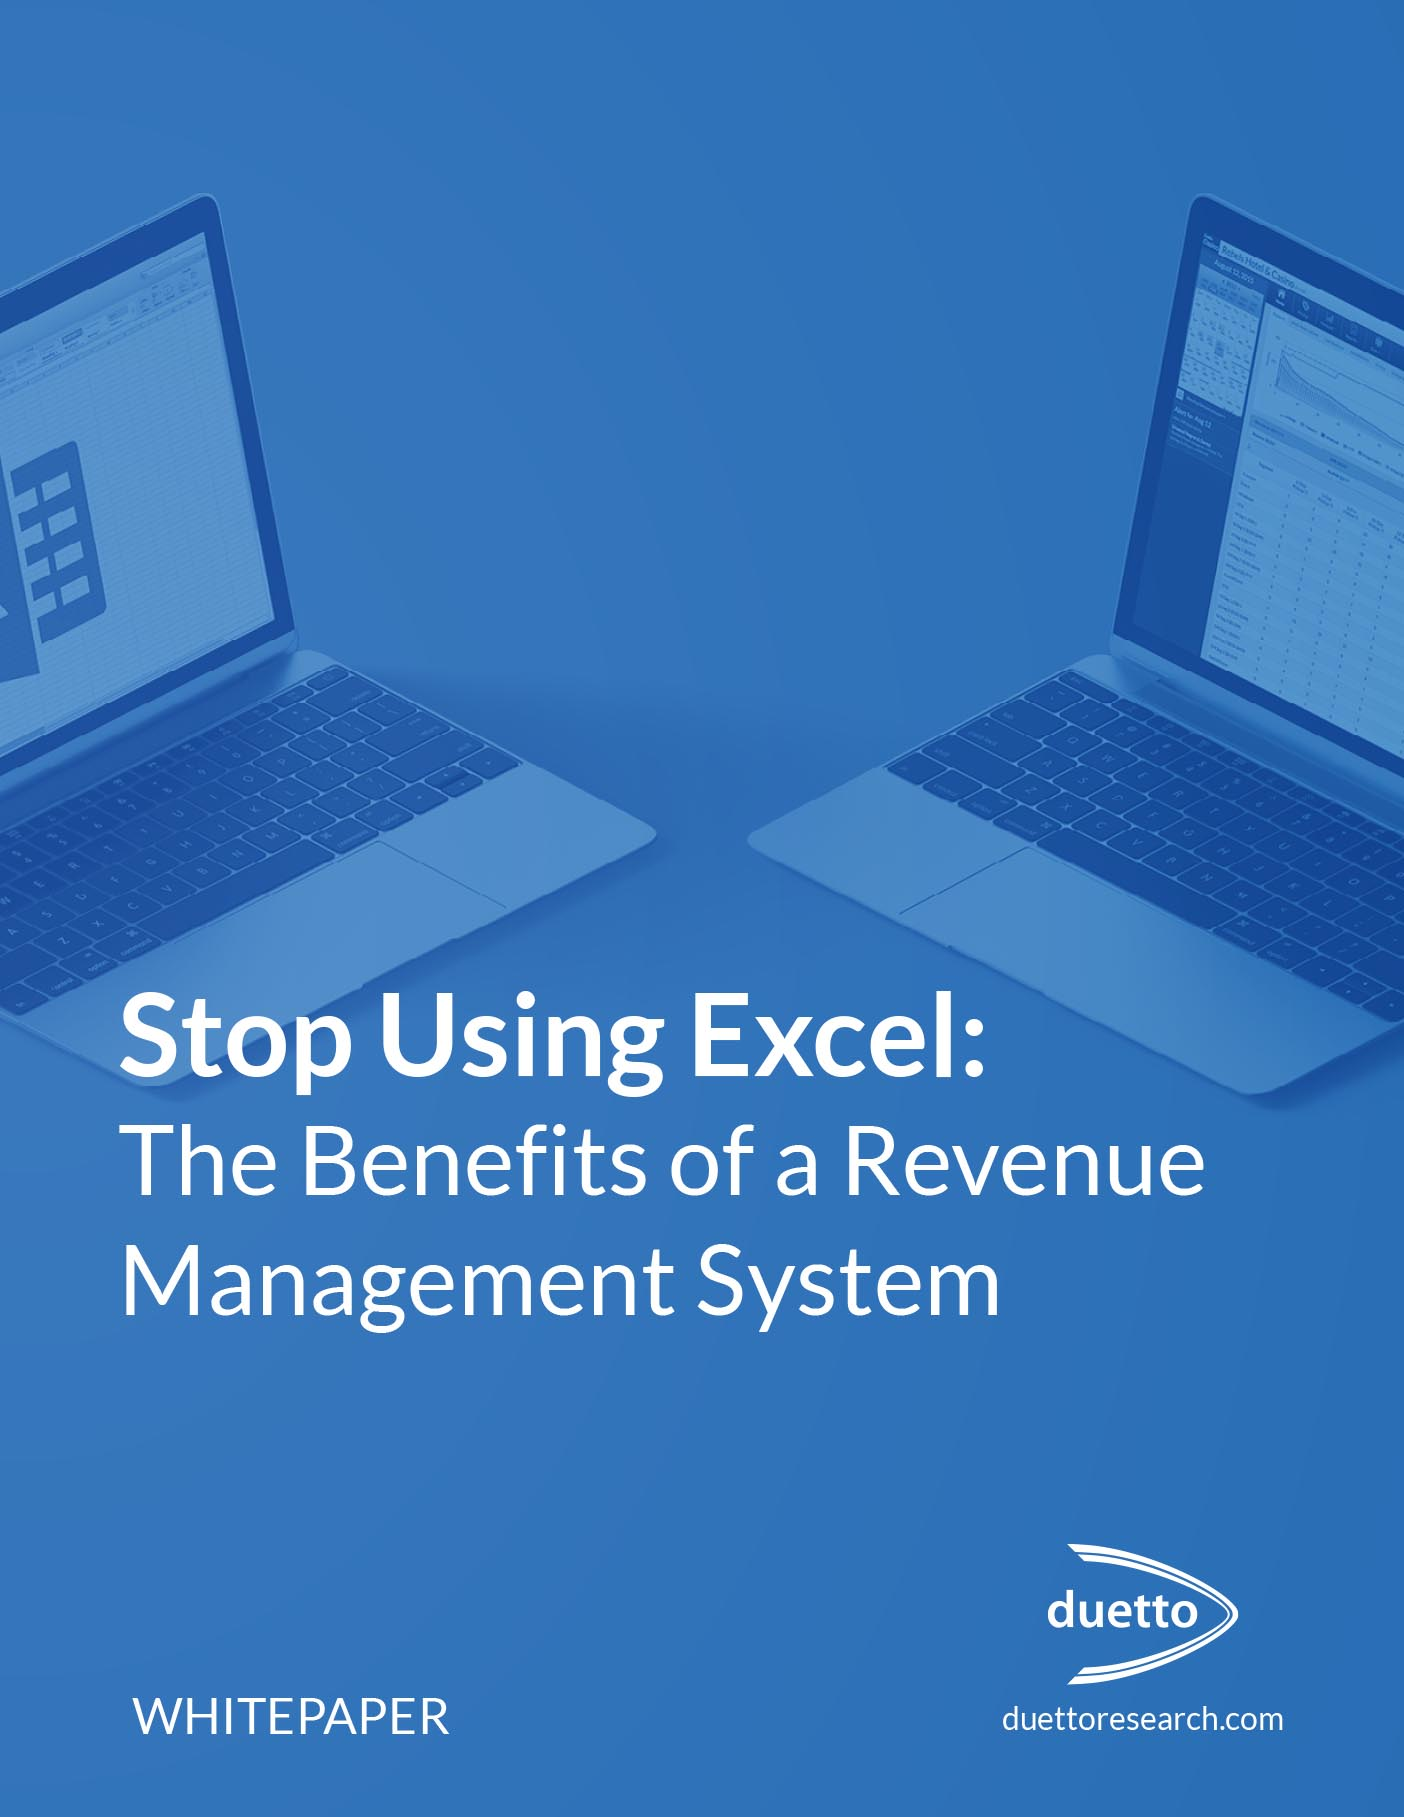 1 Stop-Using-Excel-Benefits-Revenue-Management-System-1.jpg